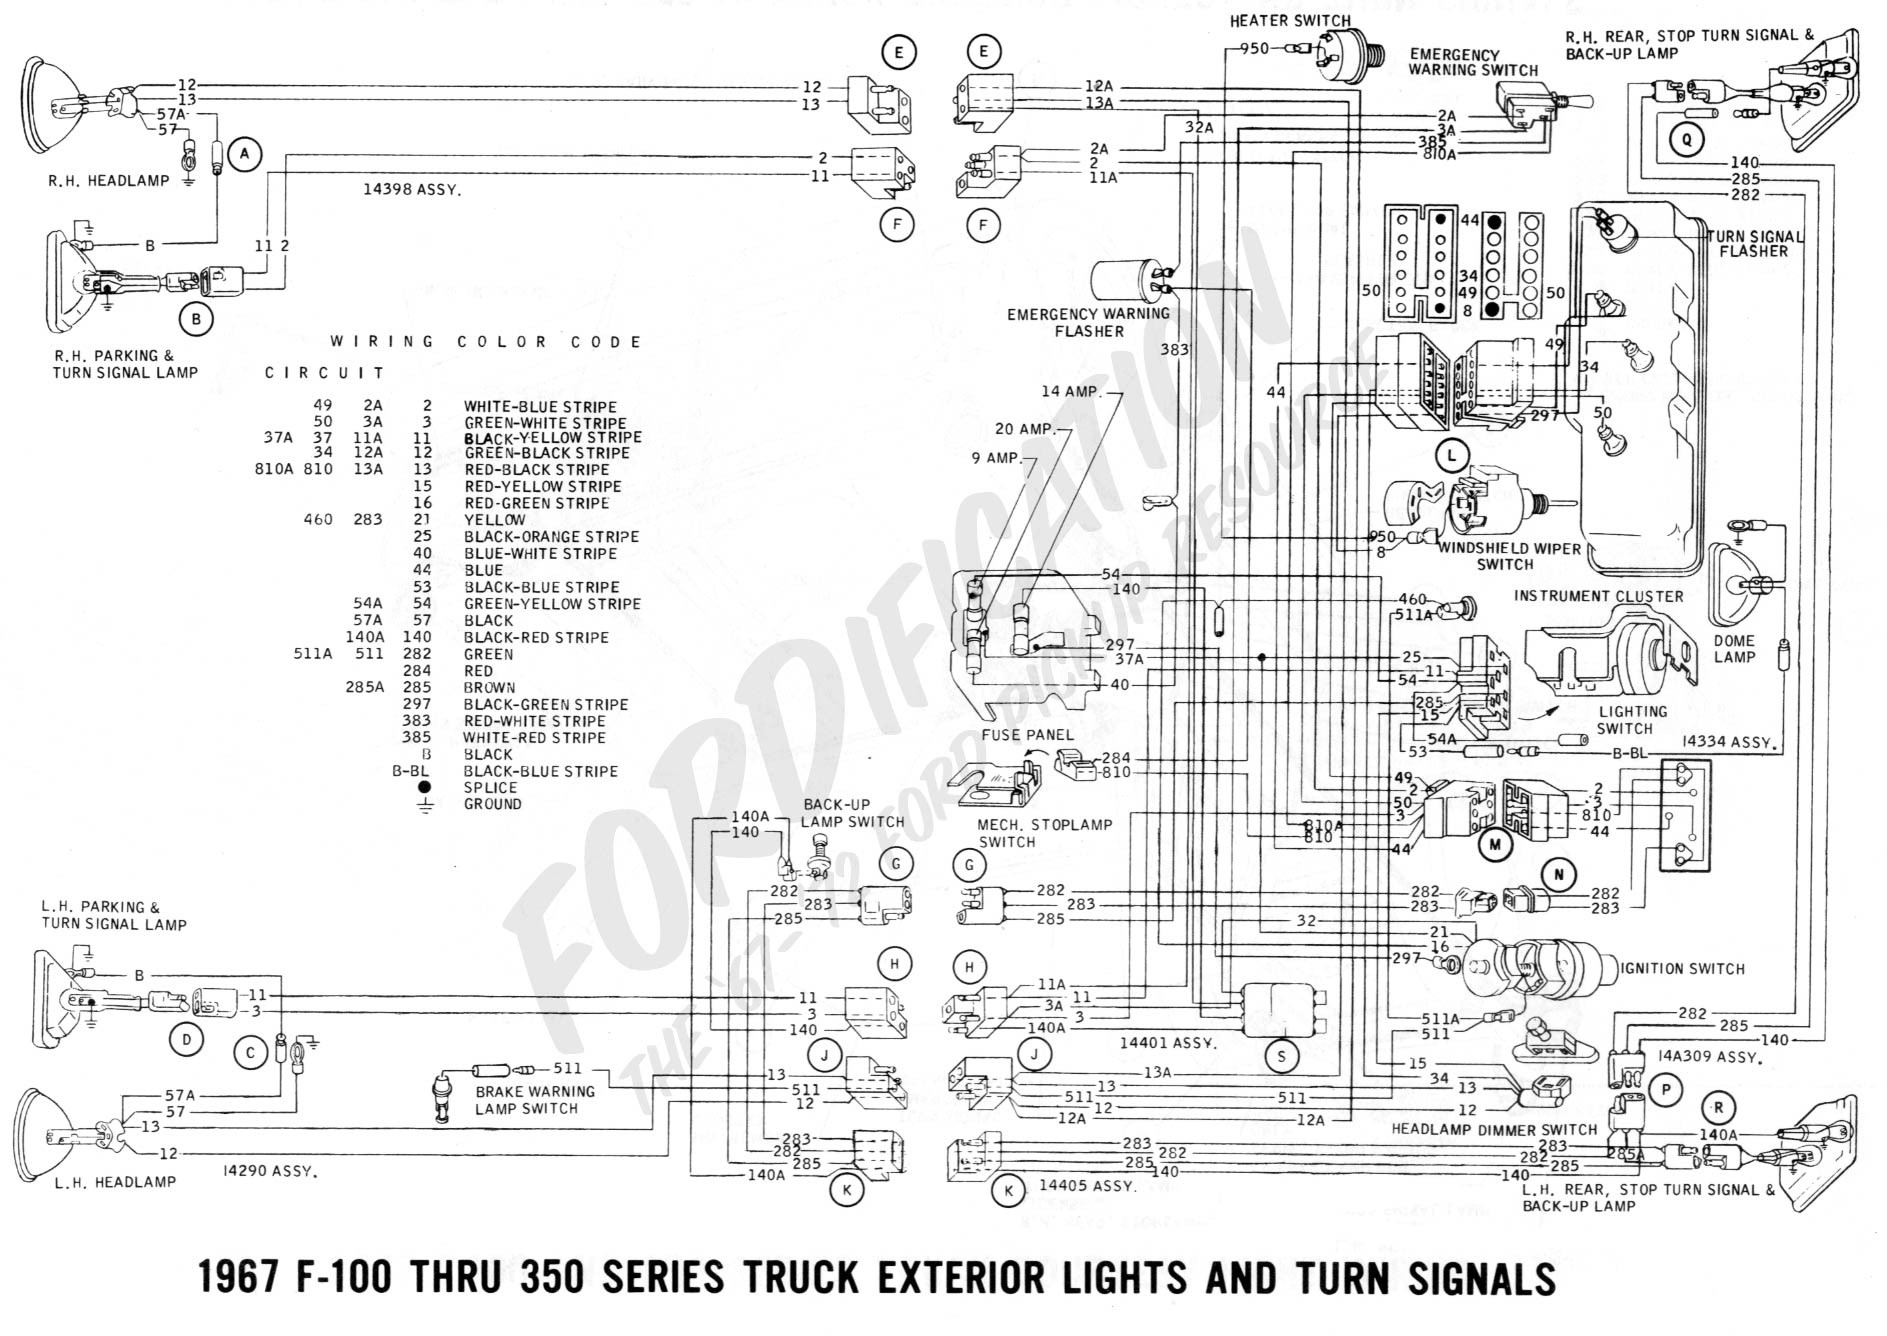 1966 ford f100 turn signal wiring diagram wiring diagram where do the fuse wires for the turn